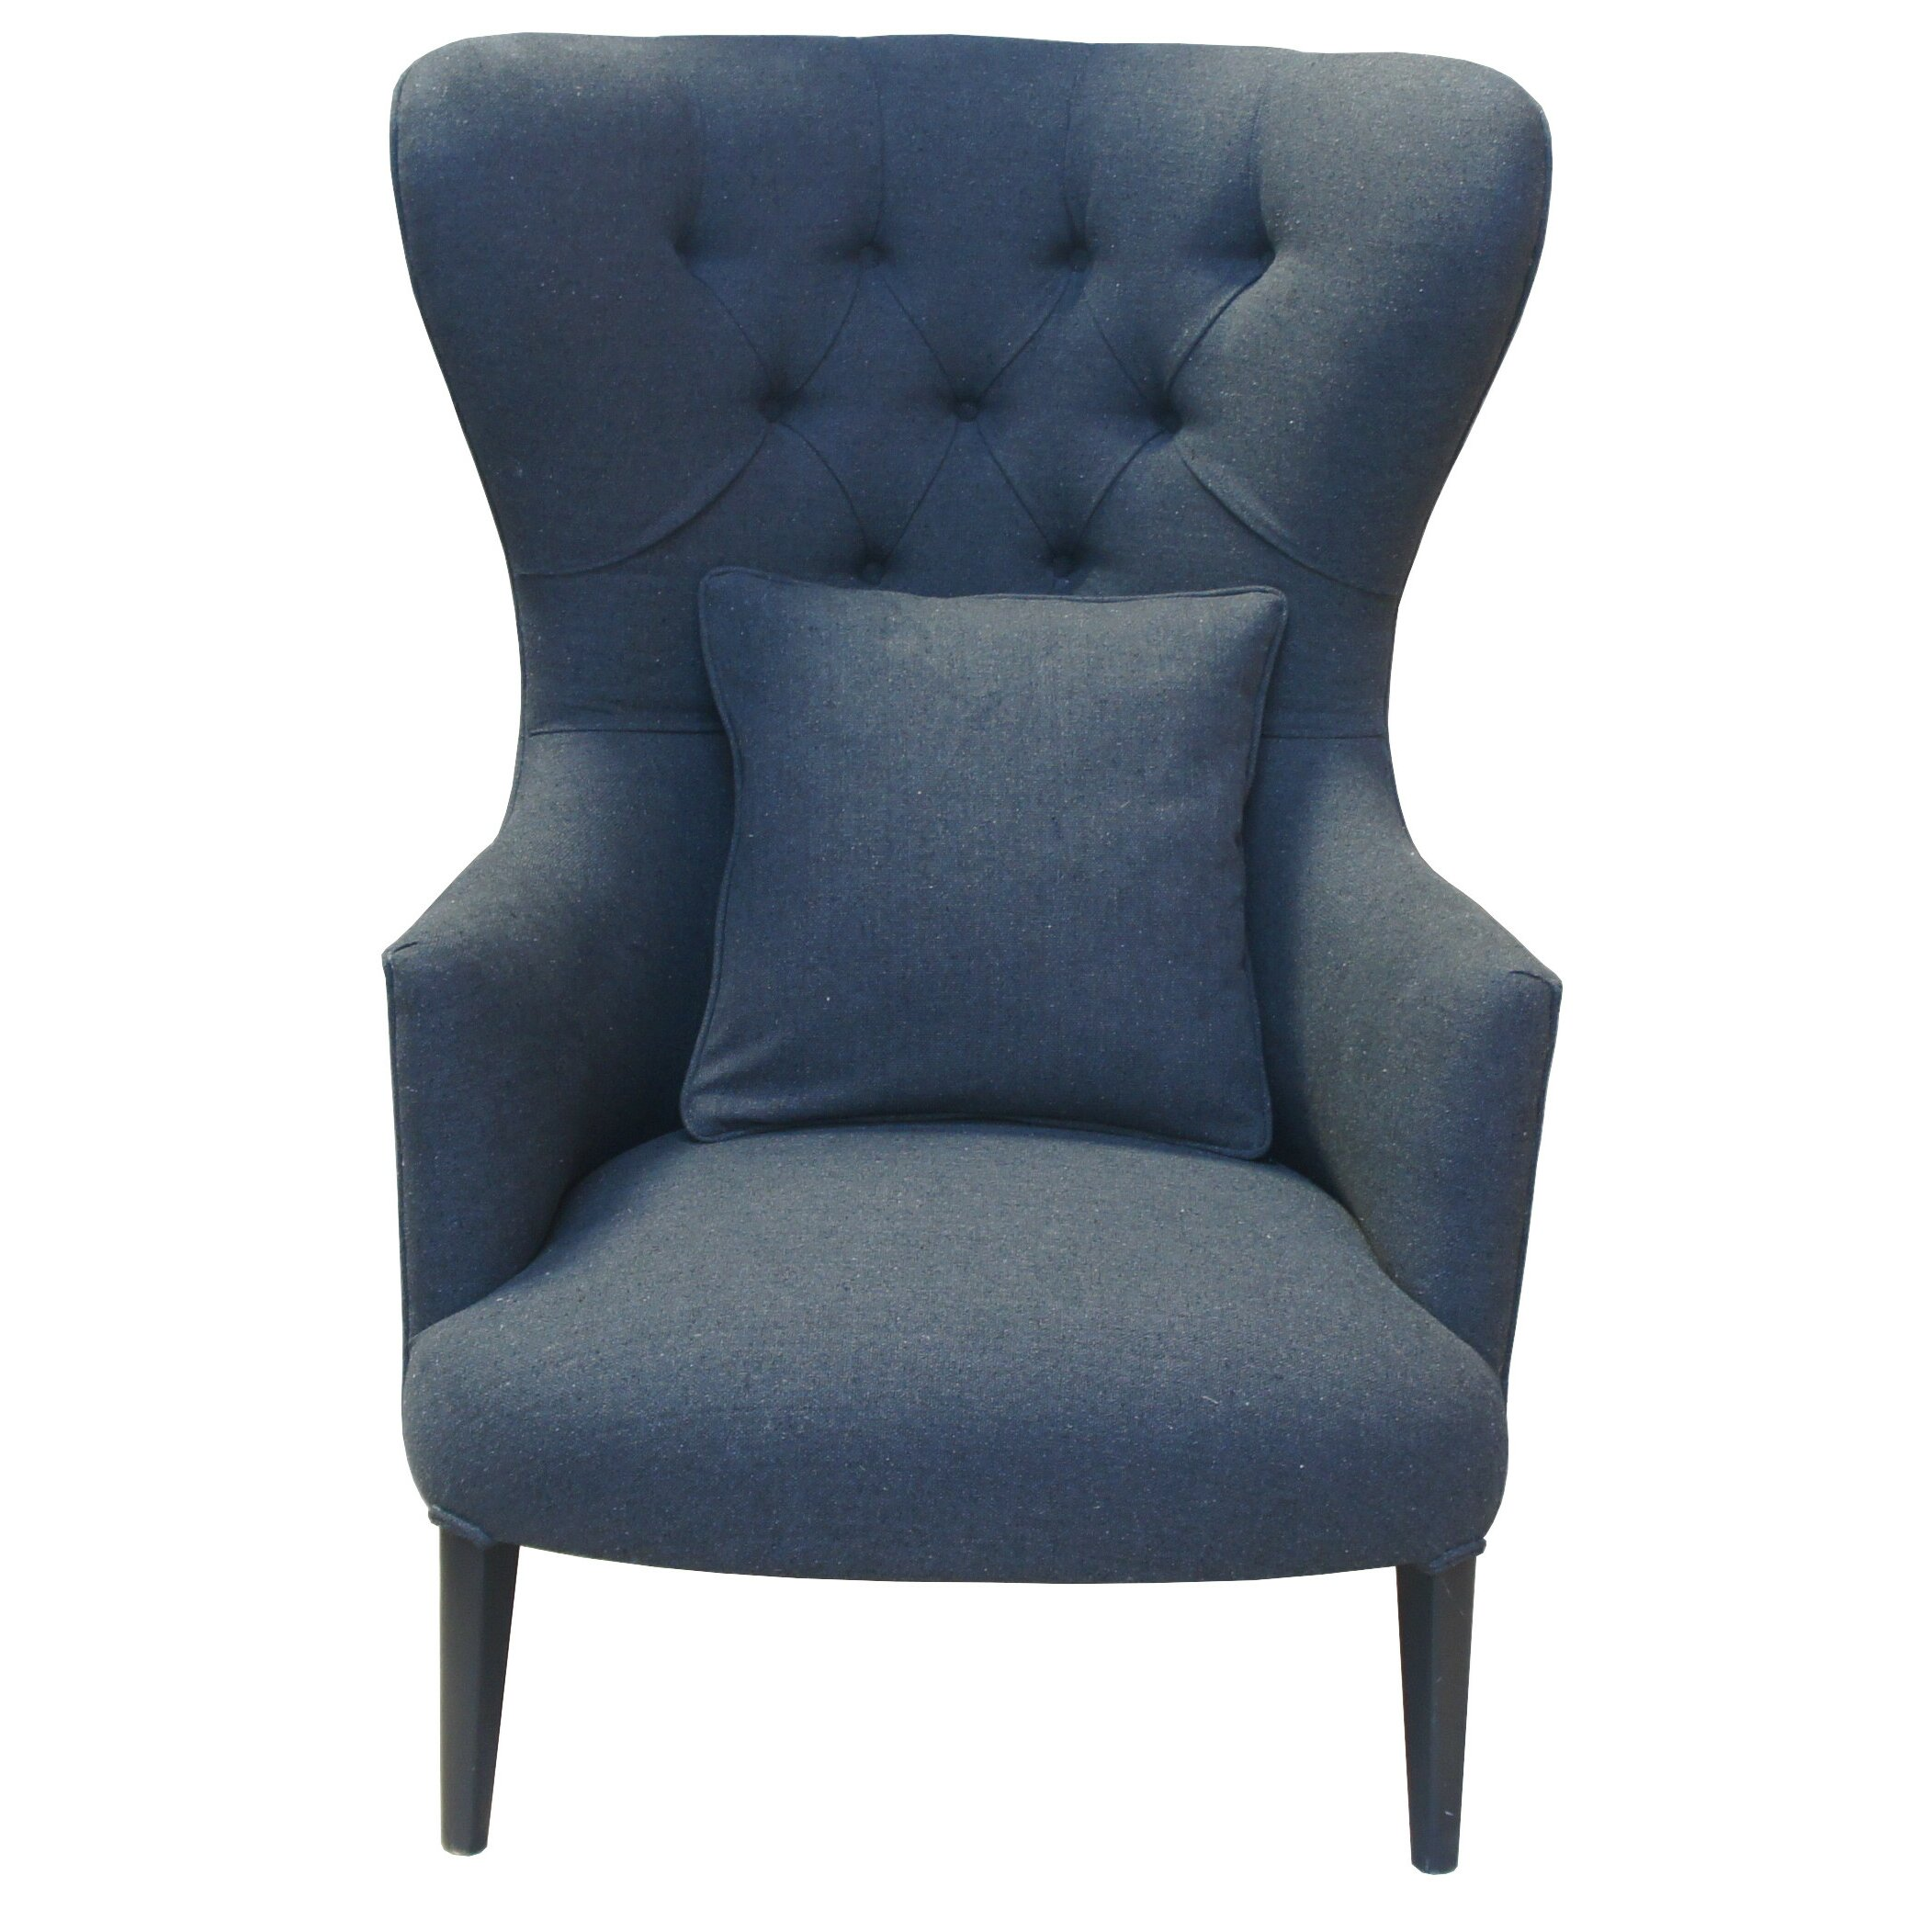 skiros french connections fauteuil oreille paris armchair wayfair uk. Black Bedroom Furniture Sets. Home Design Ideas